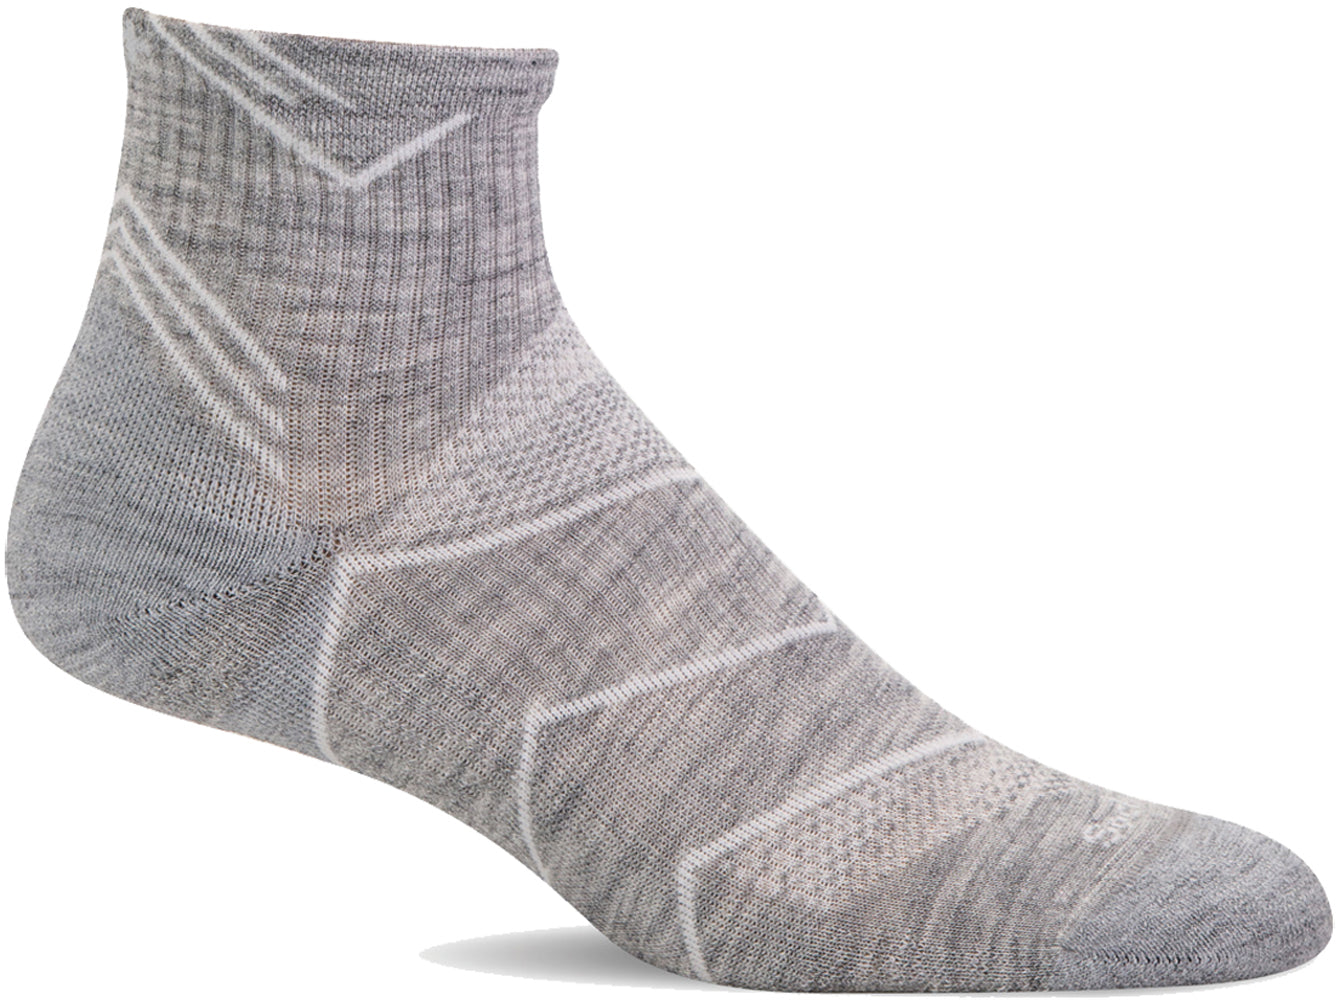 Sockwell Women's Incline Quarter Sock in Grey SMU color from the side